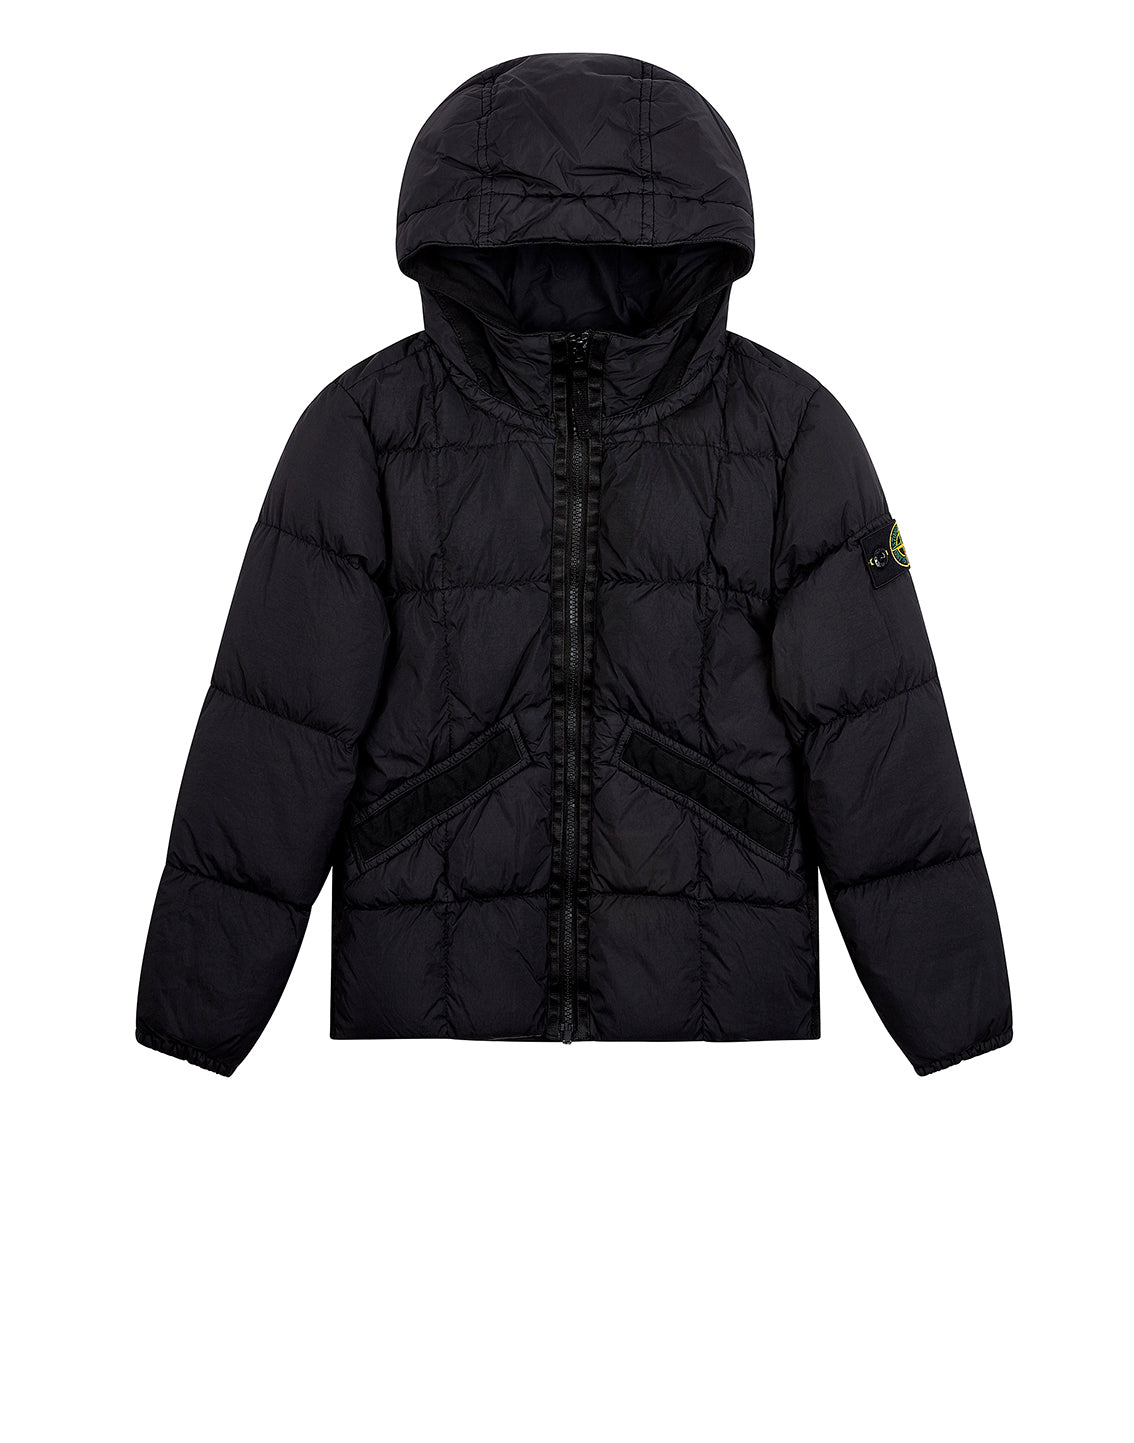 40333 GARMENT DYED CRINKLE REPS NY DOWN Jacket in Black